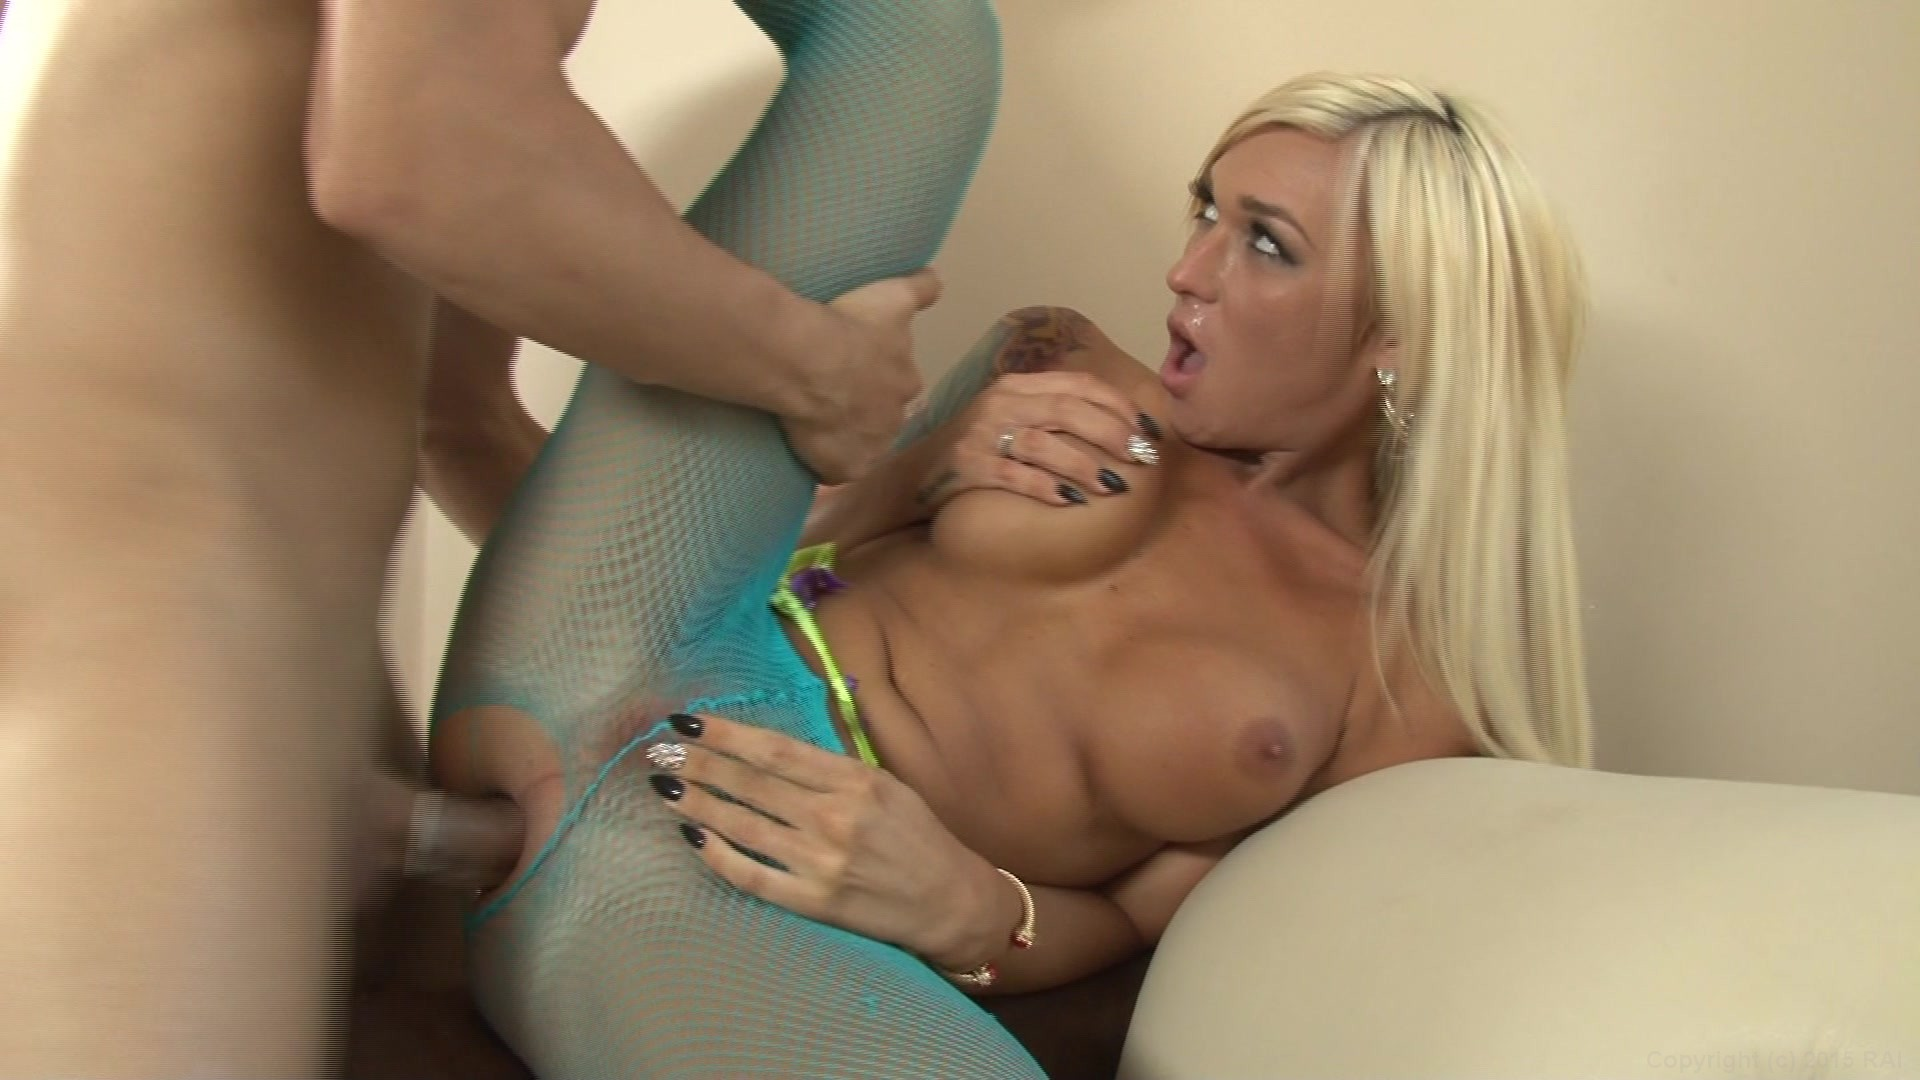 Tranny gets her pantyhose ripped open for action